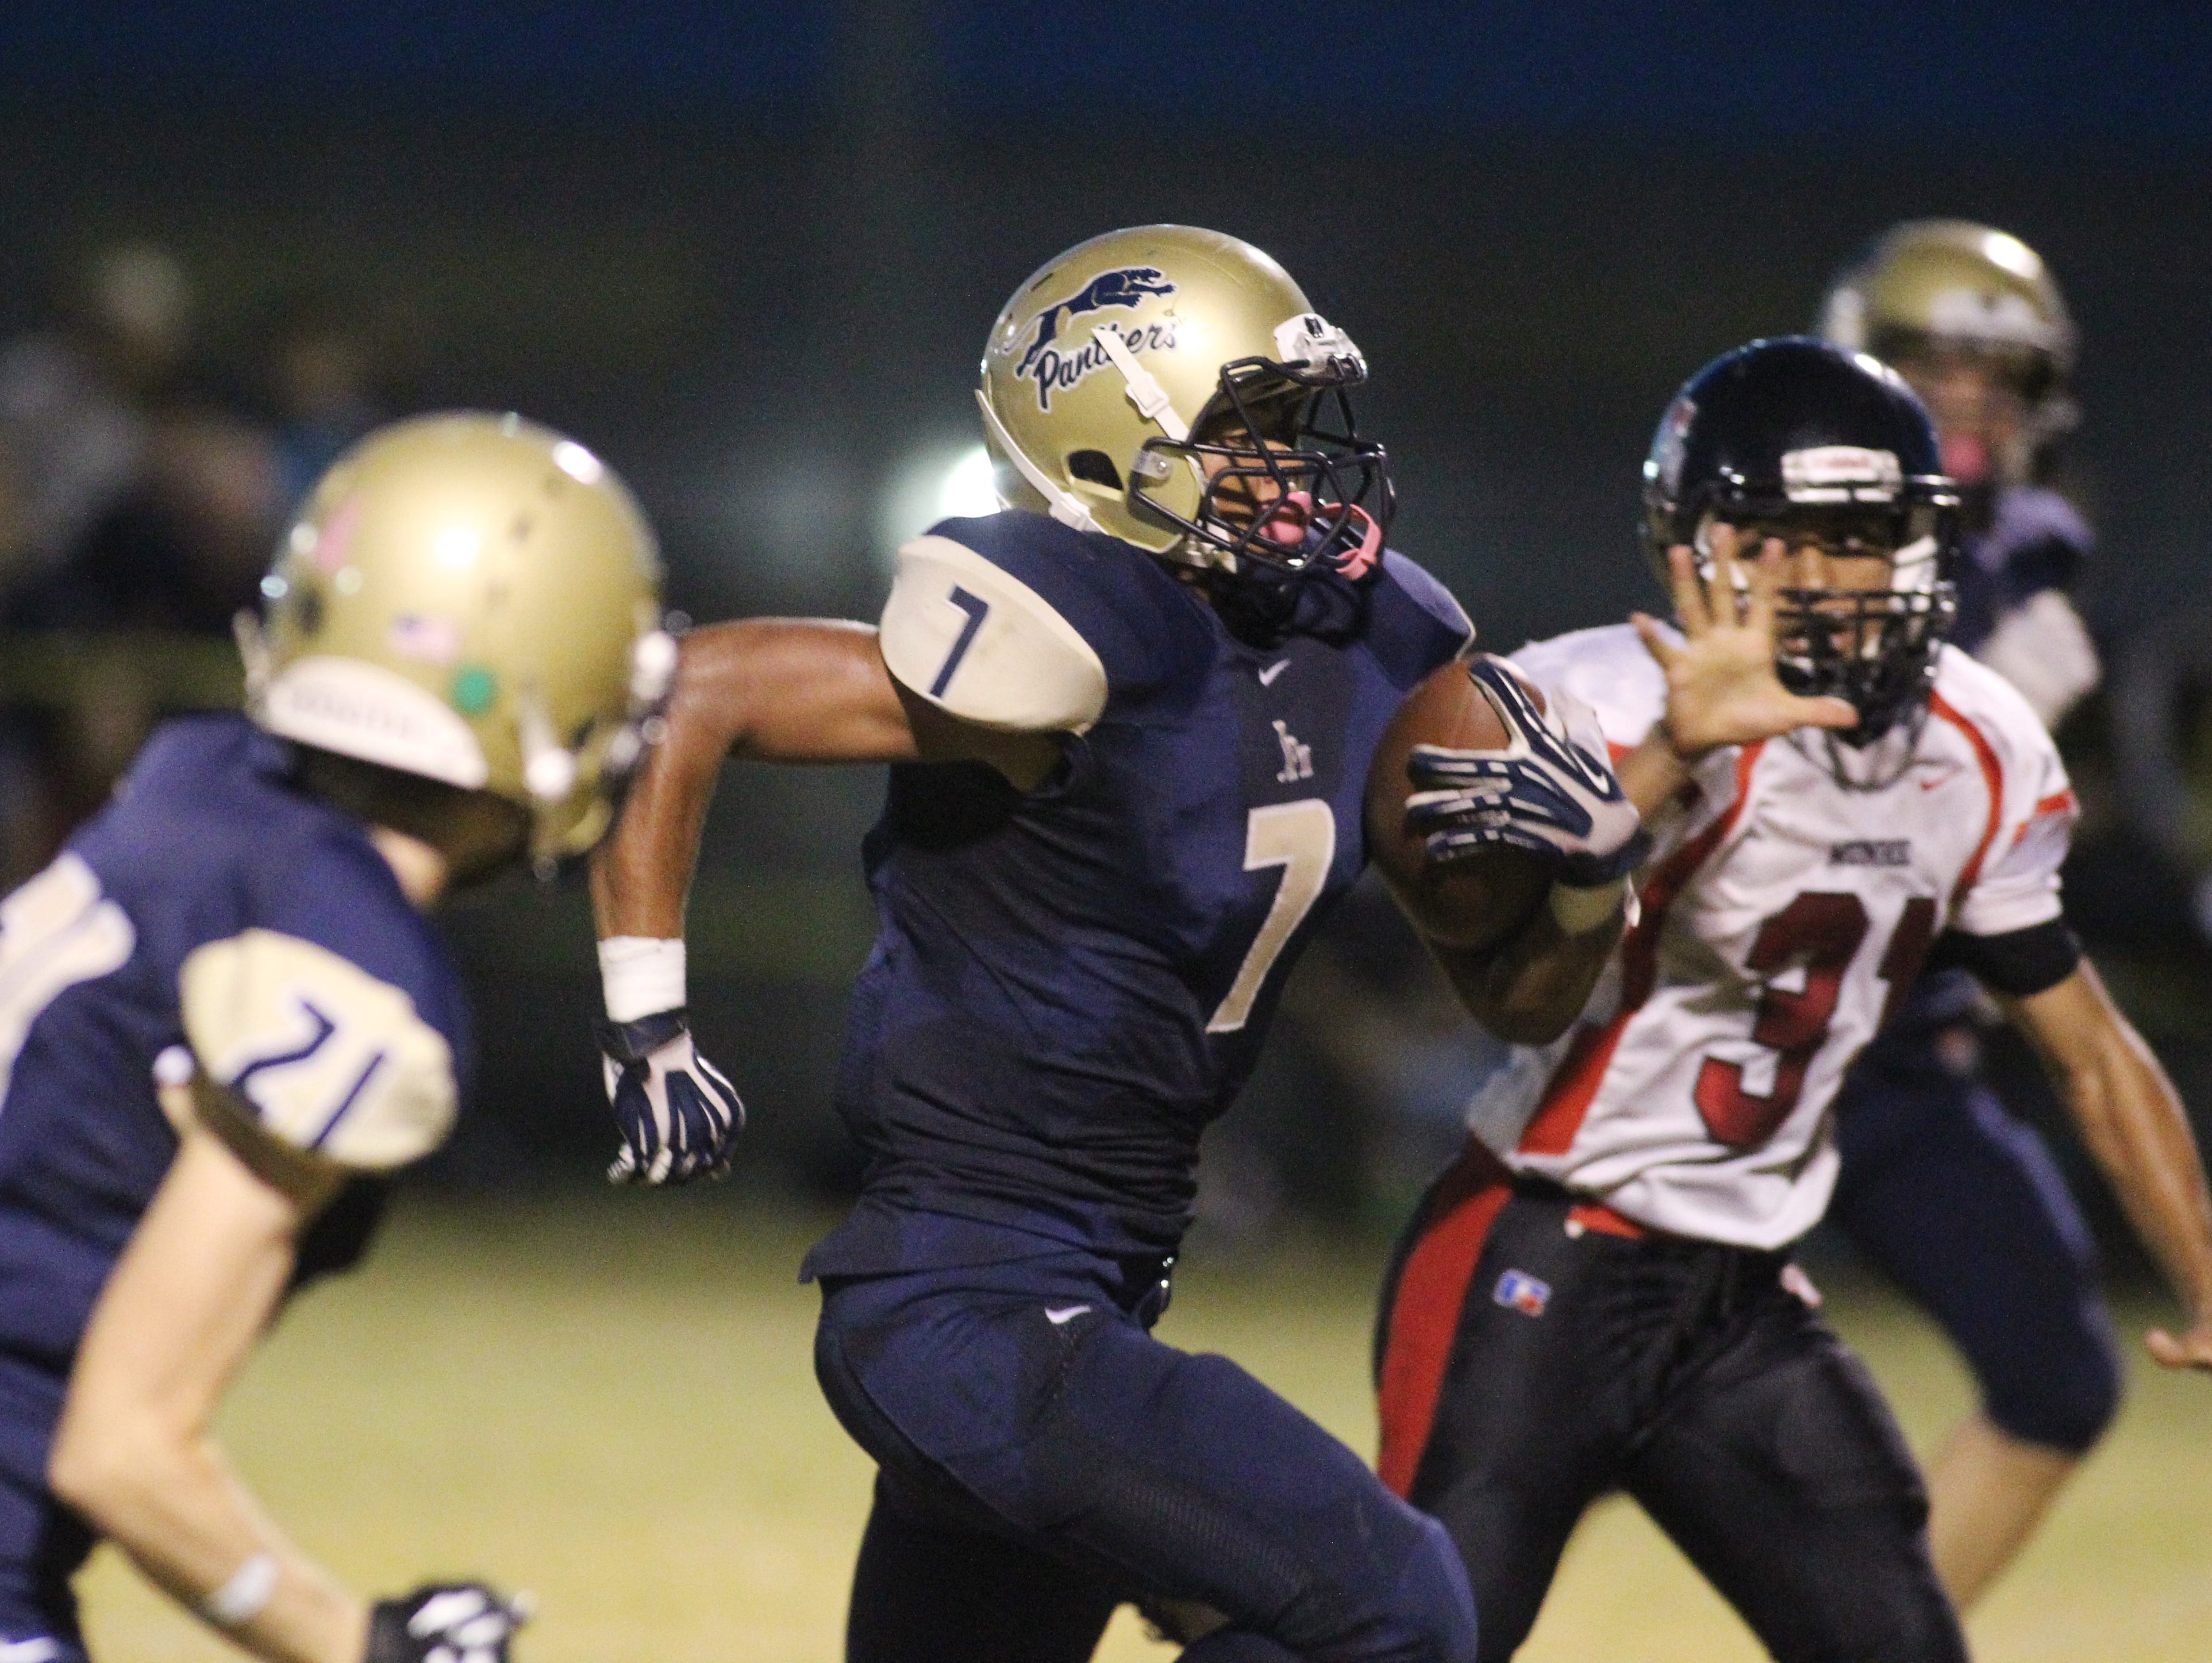 John Paul II wide receiver Sam Smith sprints toward the end zone in a game against Munroe.